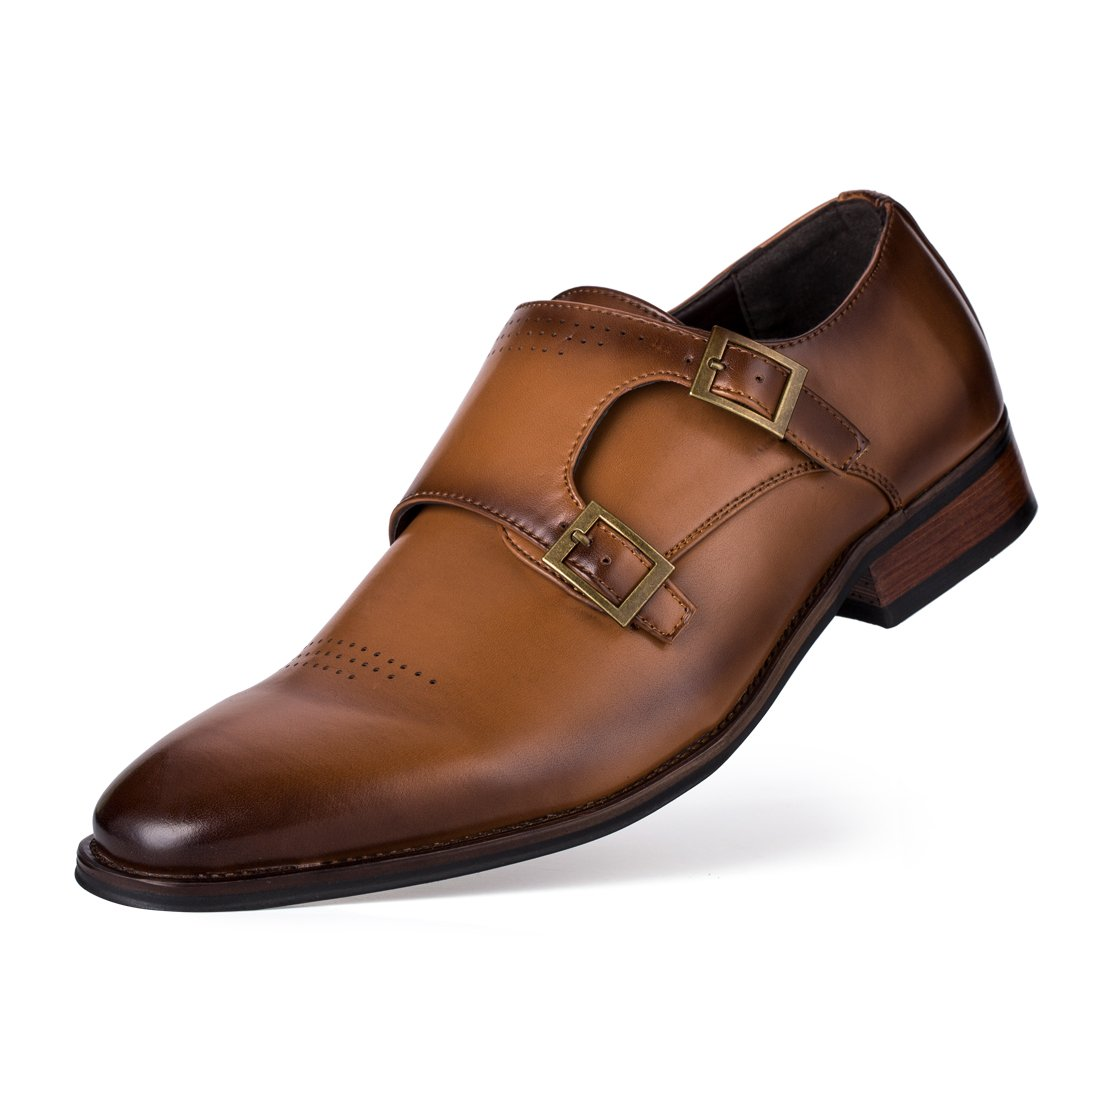 Jivana Mens PU Leather Classic Oxford Dress Shoes Double Monk Strap Buckle (11, Brown-8)